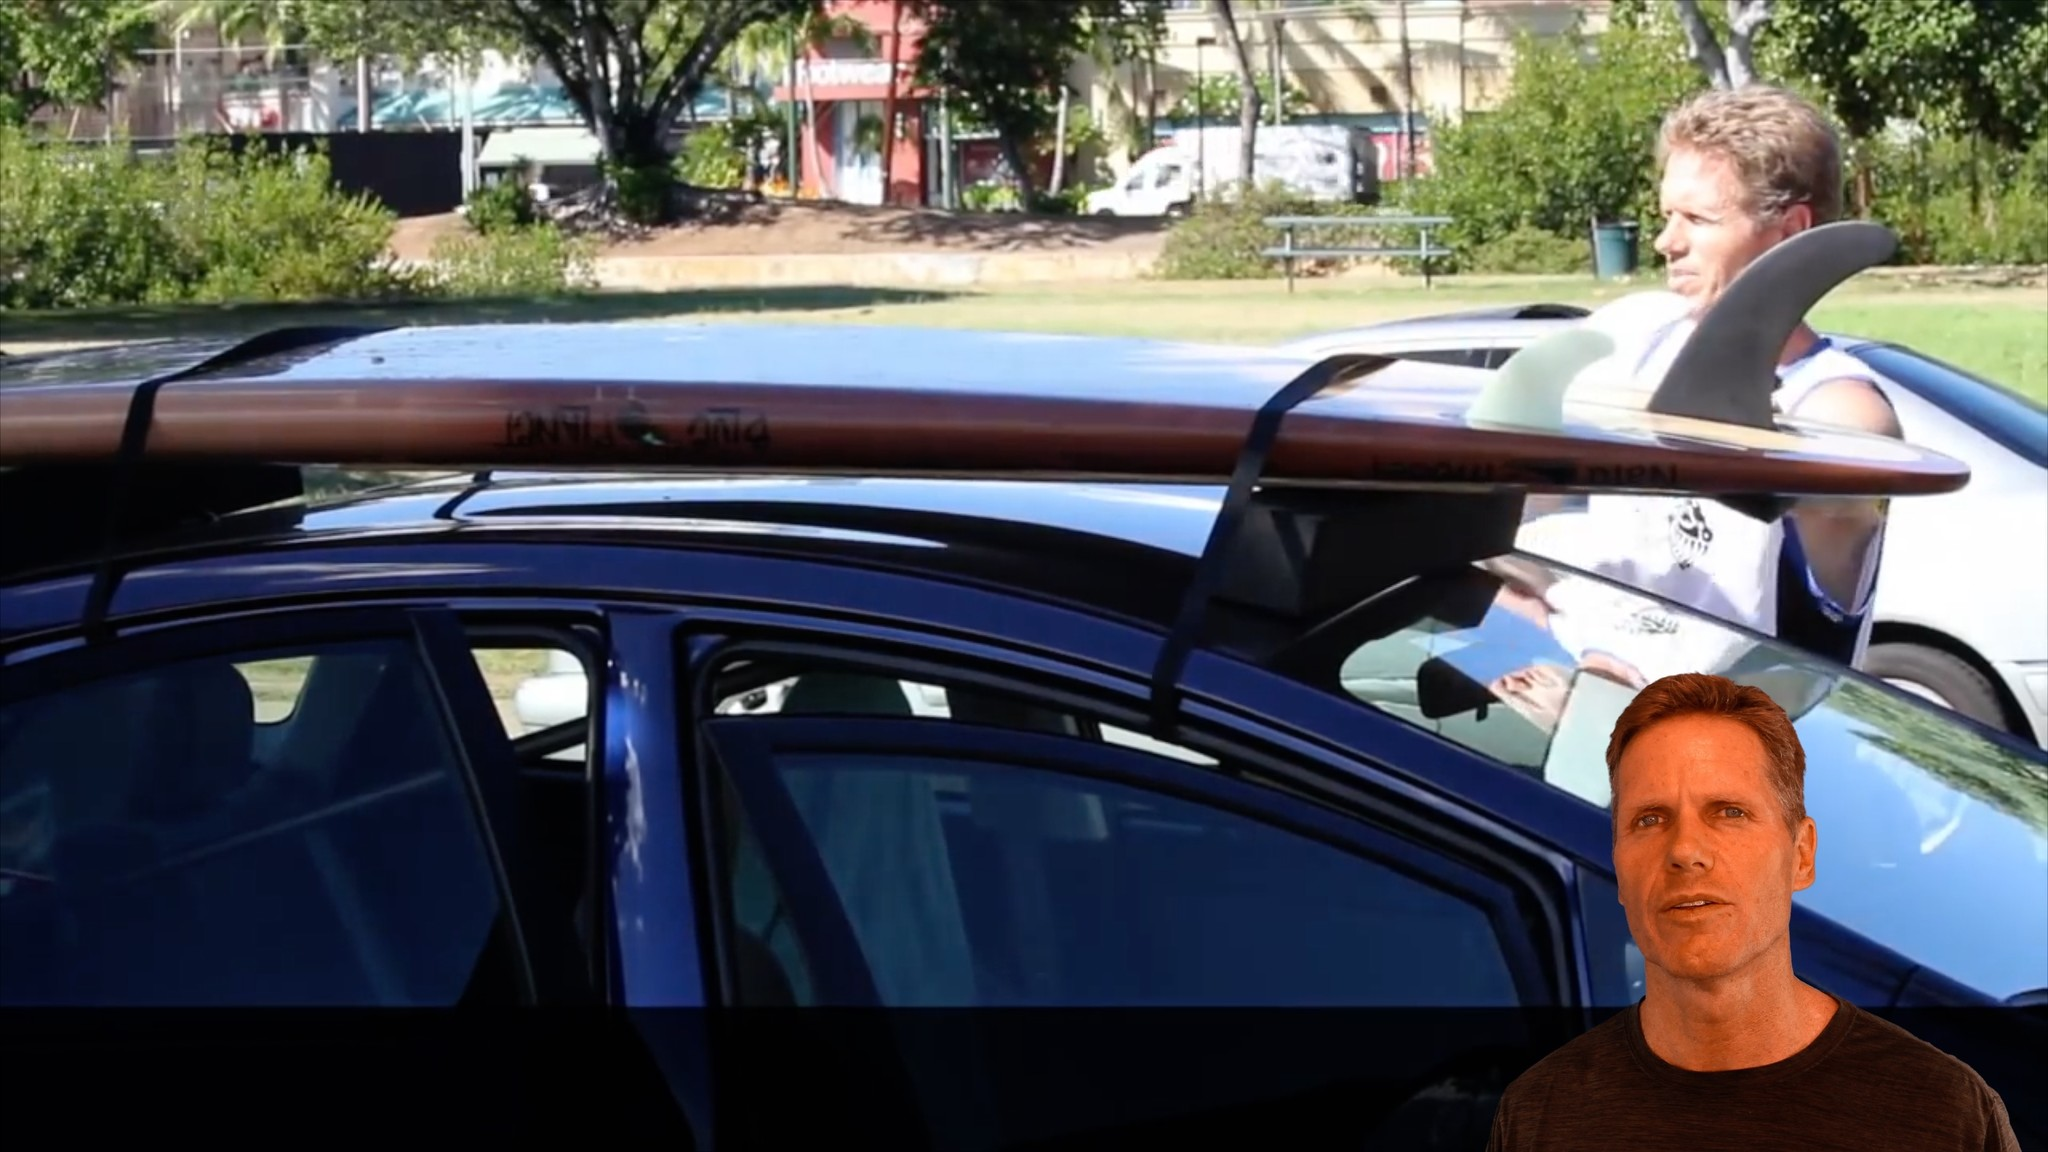 how to strap board to car without roof racks